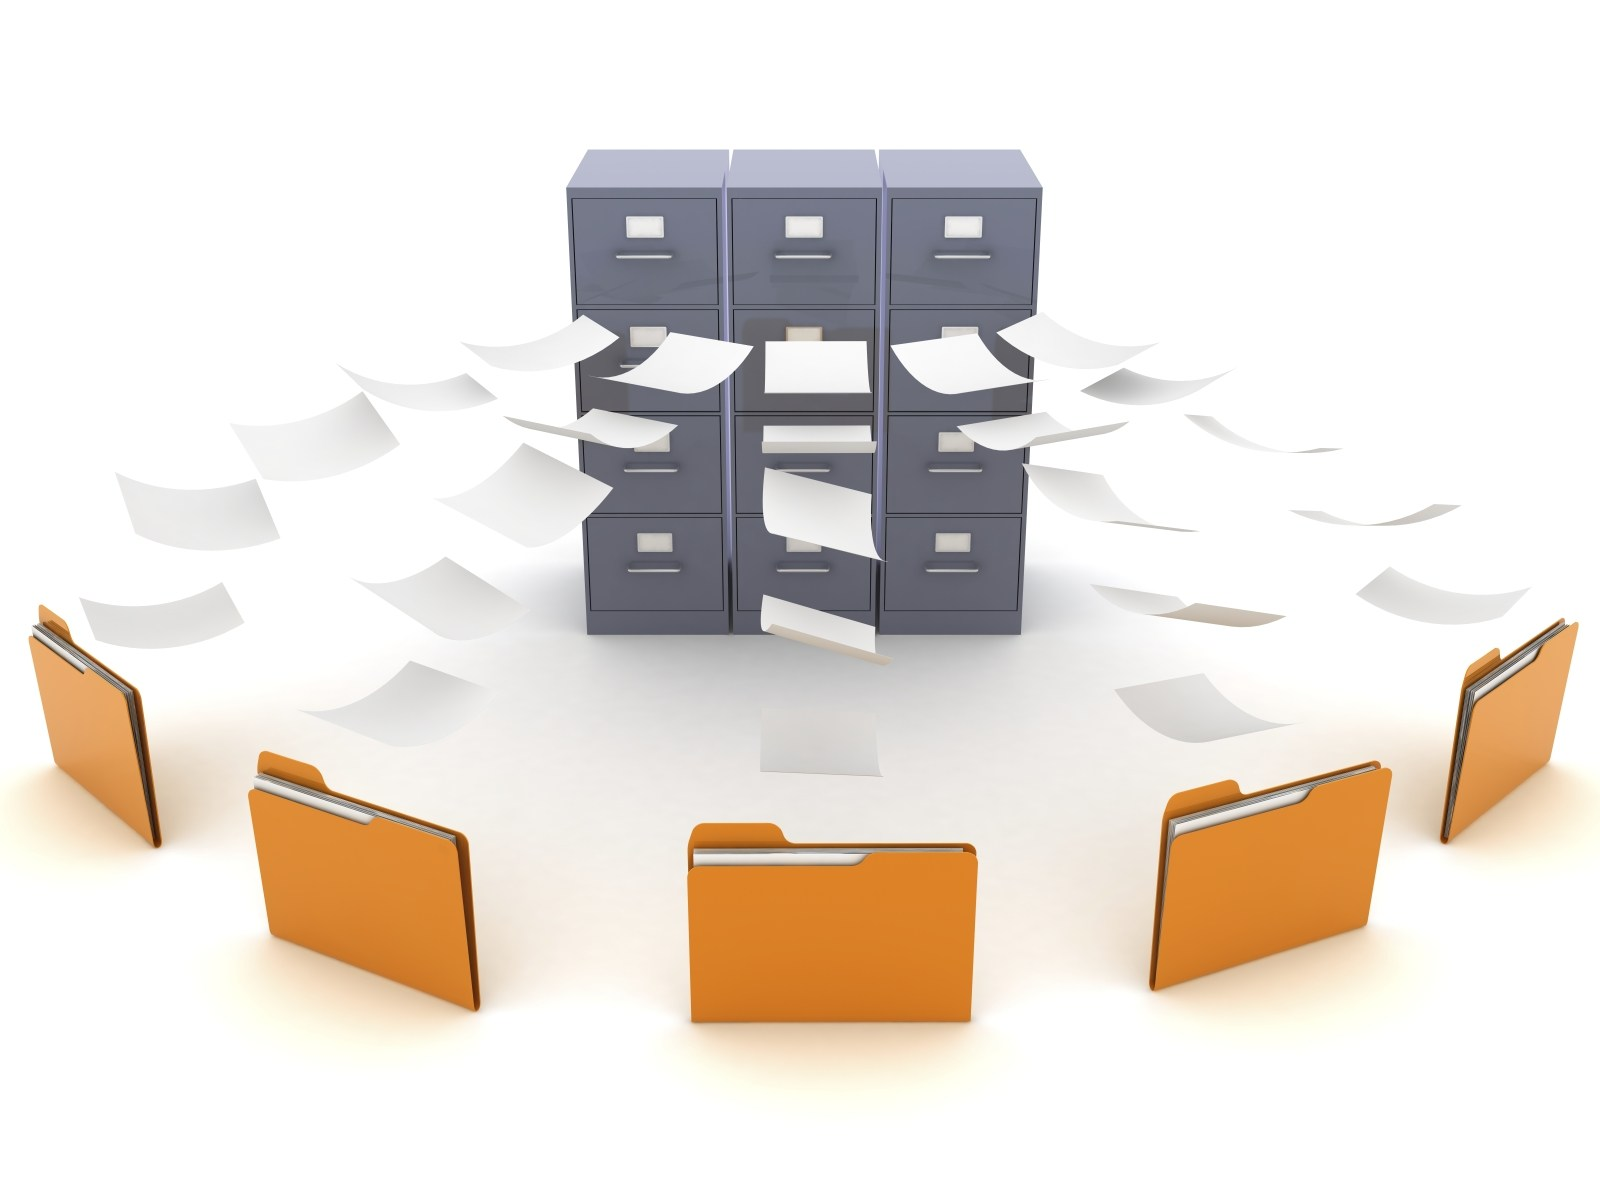 IT Project Management Is a Task That Consists of Many Different Steps